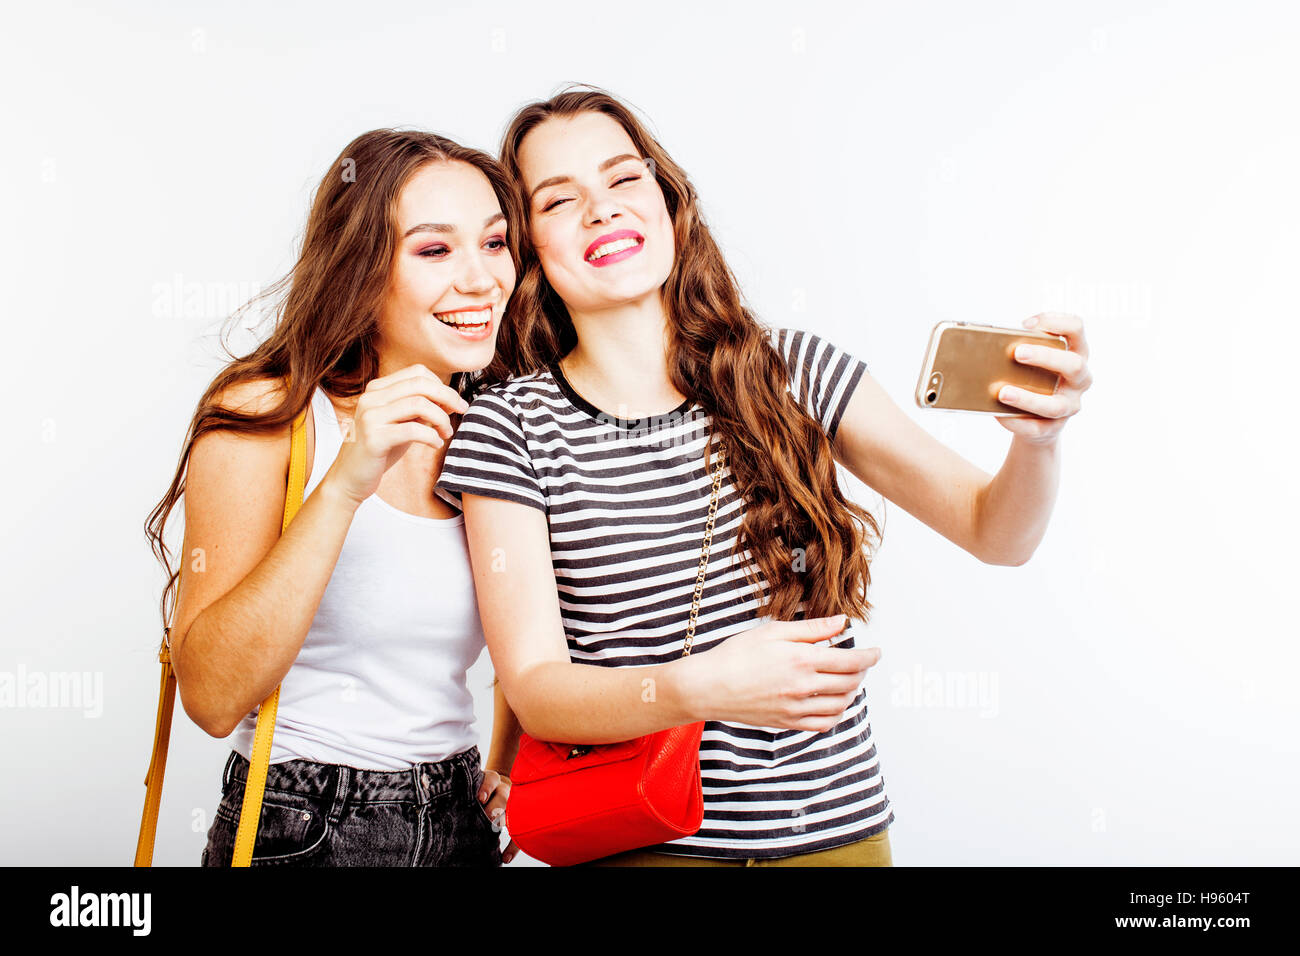 Two Best Friends Teenage Girls Together Having Fun Posing Emotional